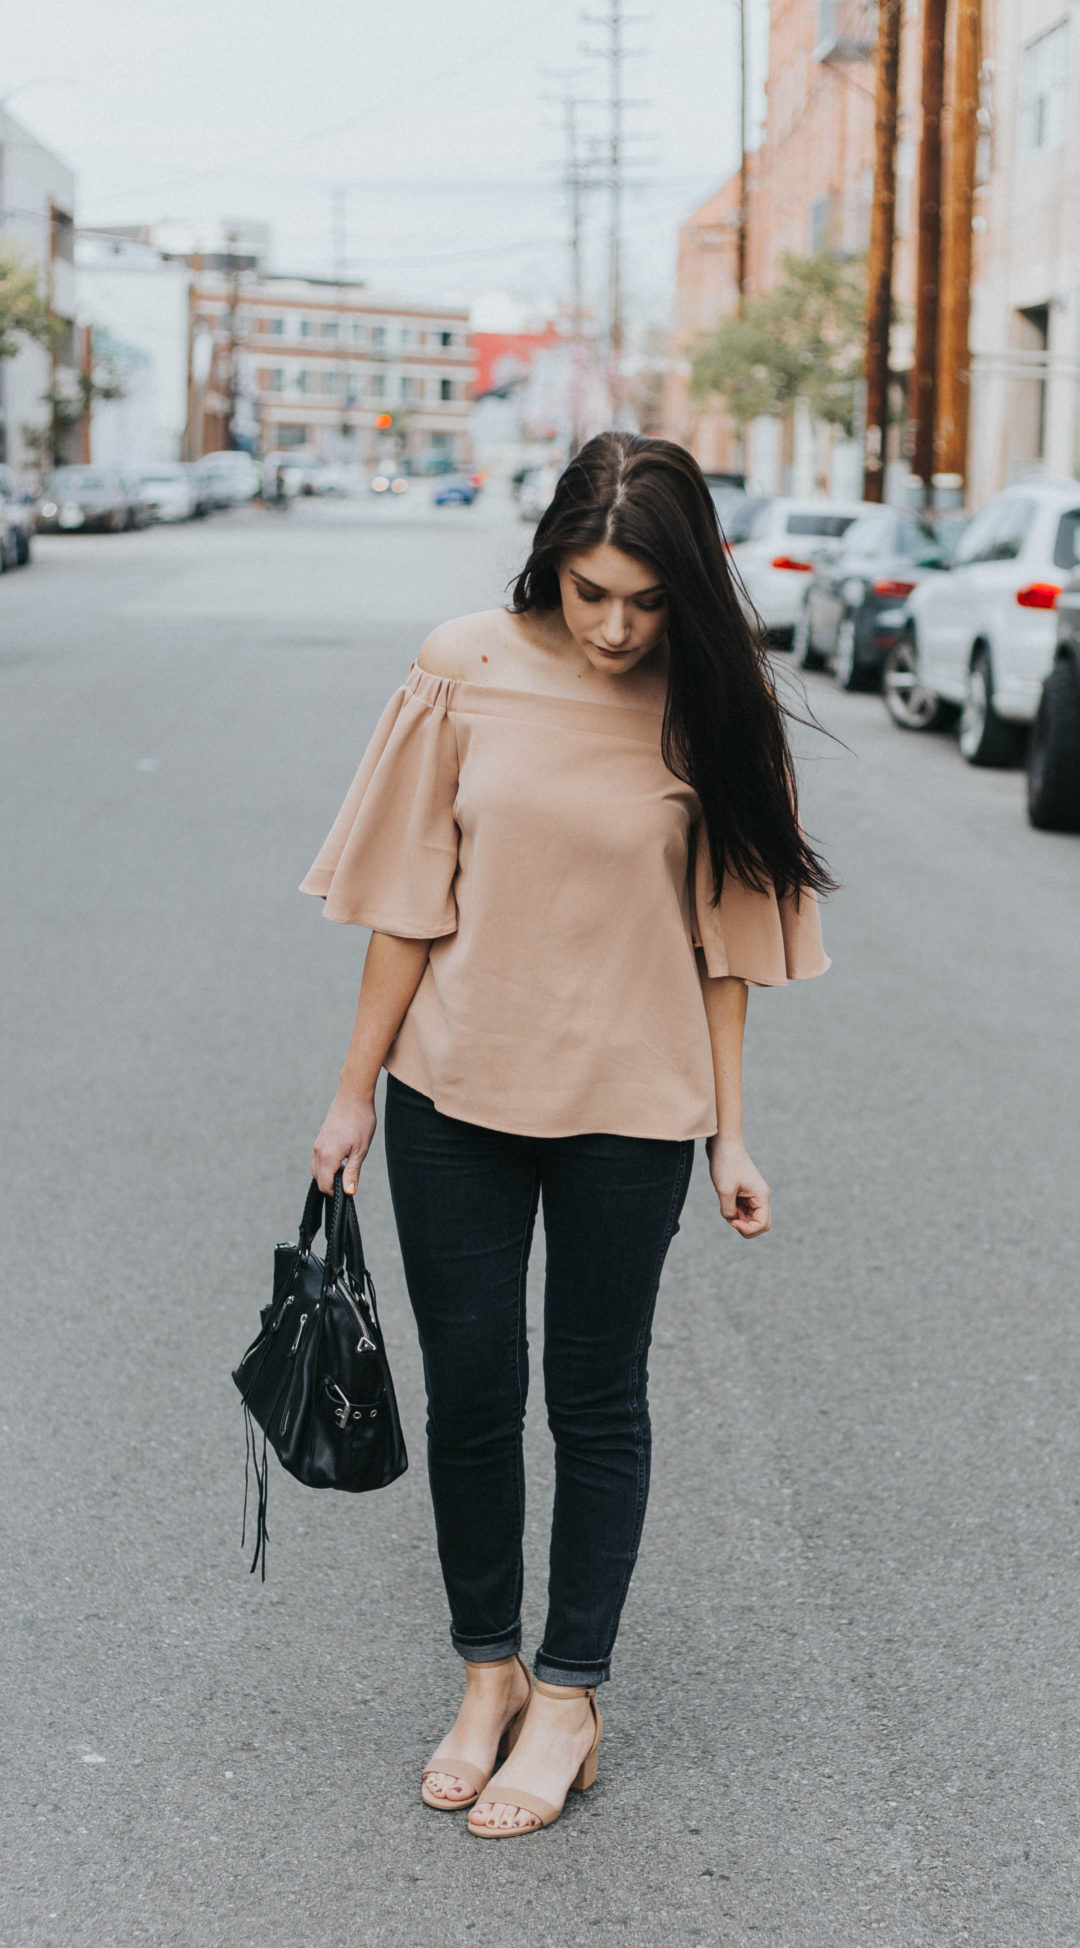 Spring Nude Tones | Twinspiration